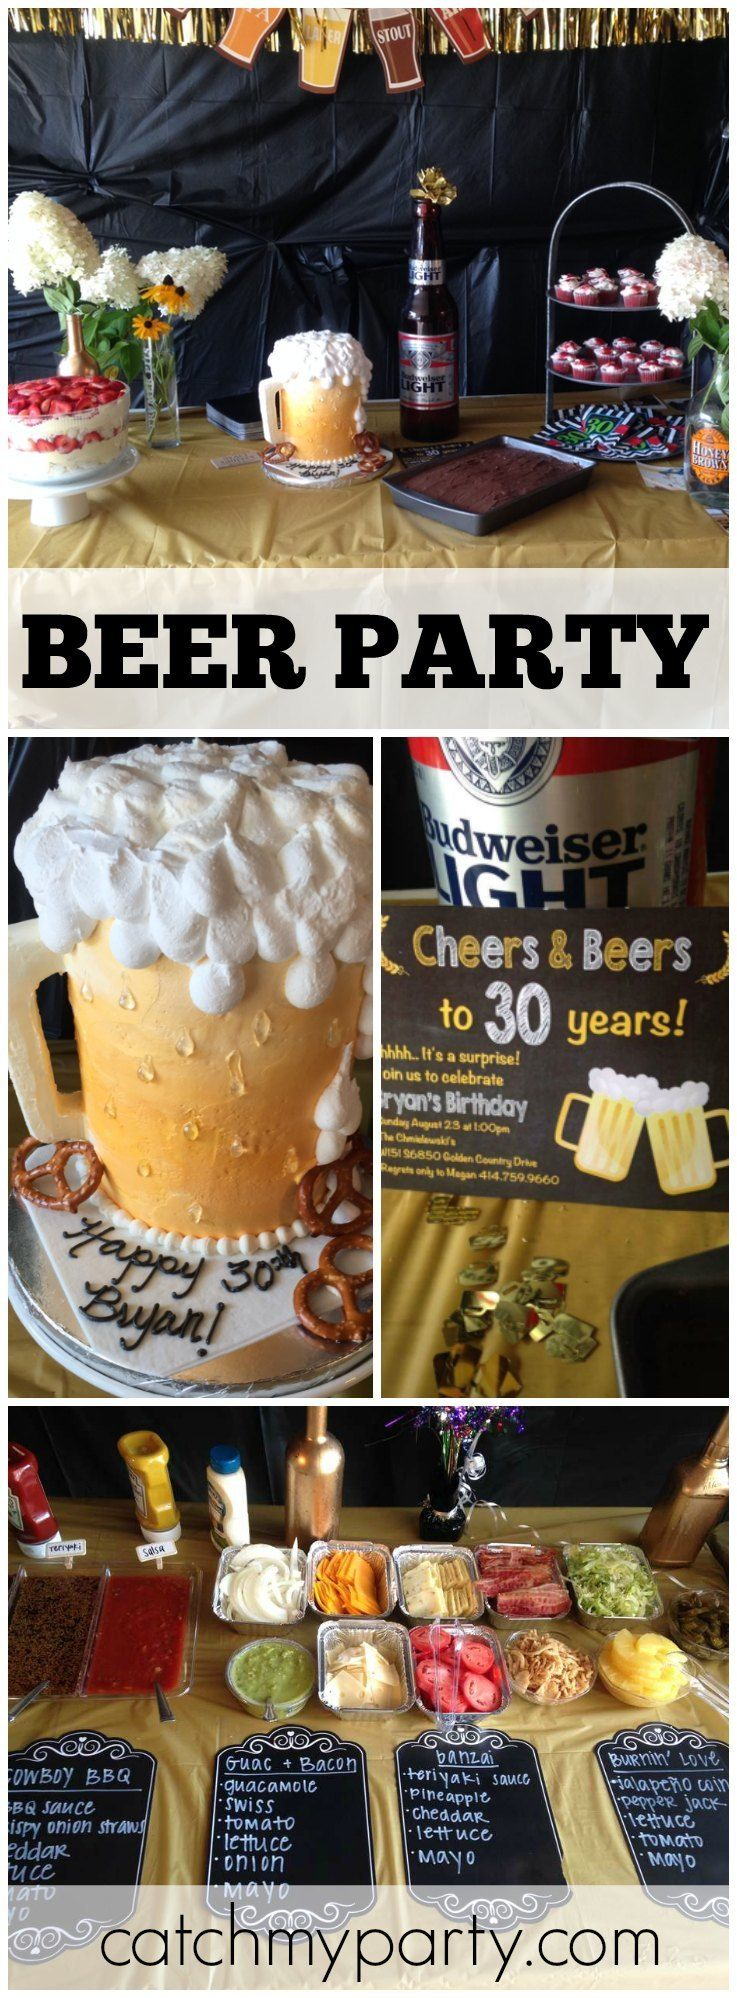 Beer Is The Theme For This 30th Birthday Party See More Ideas At CatchMyParty